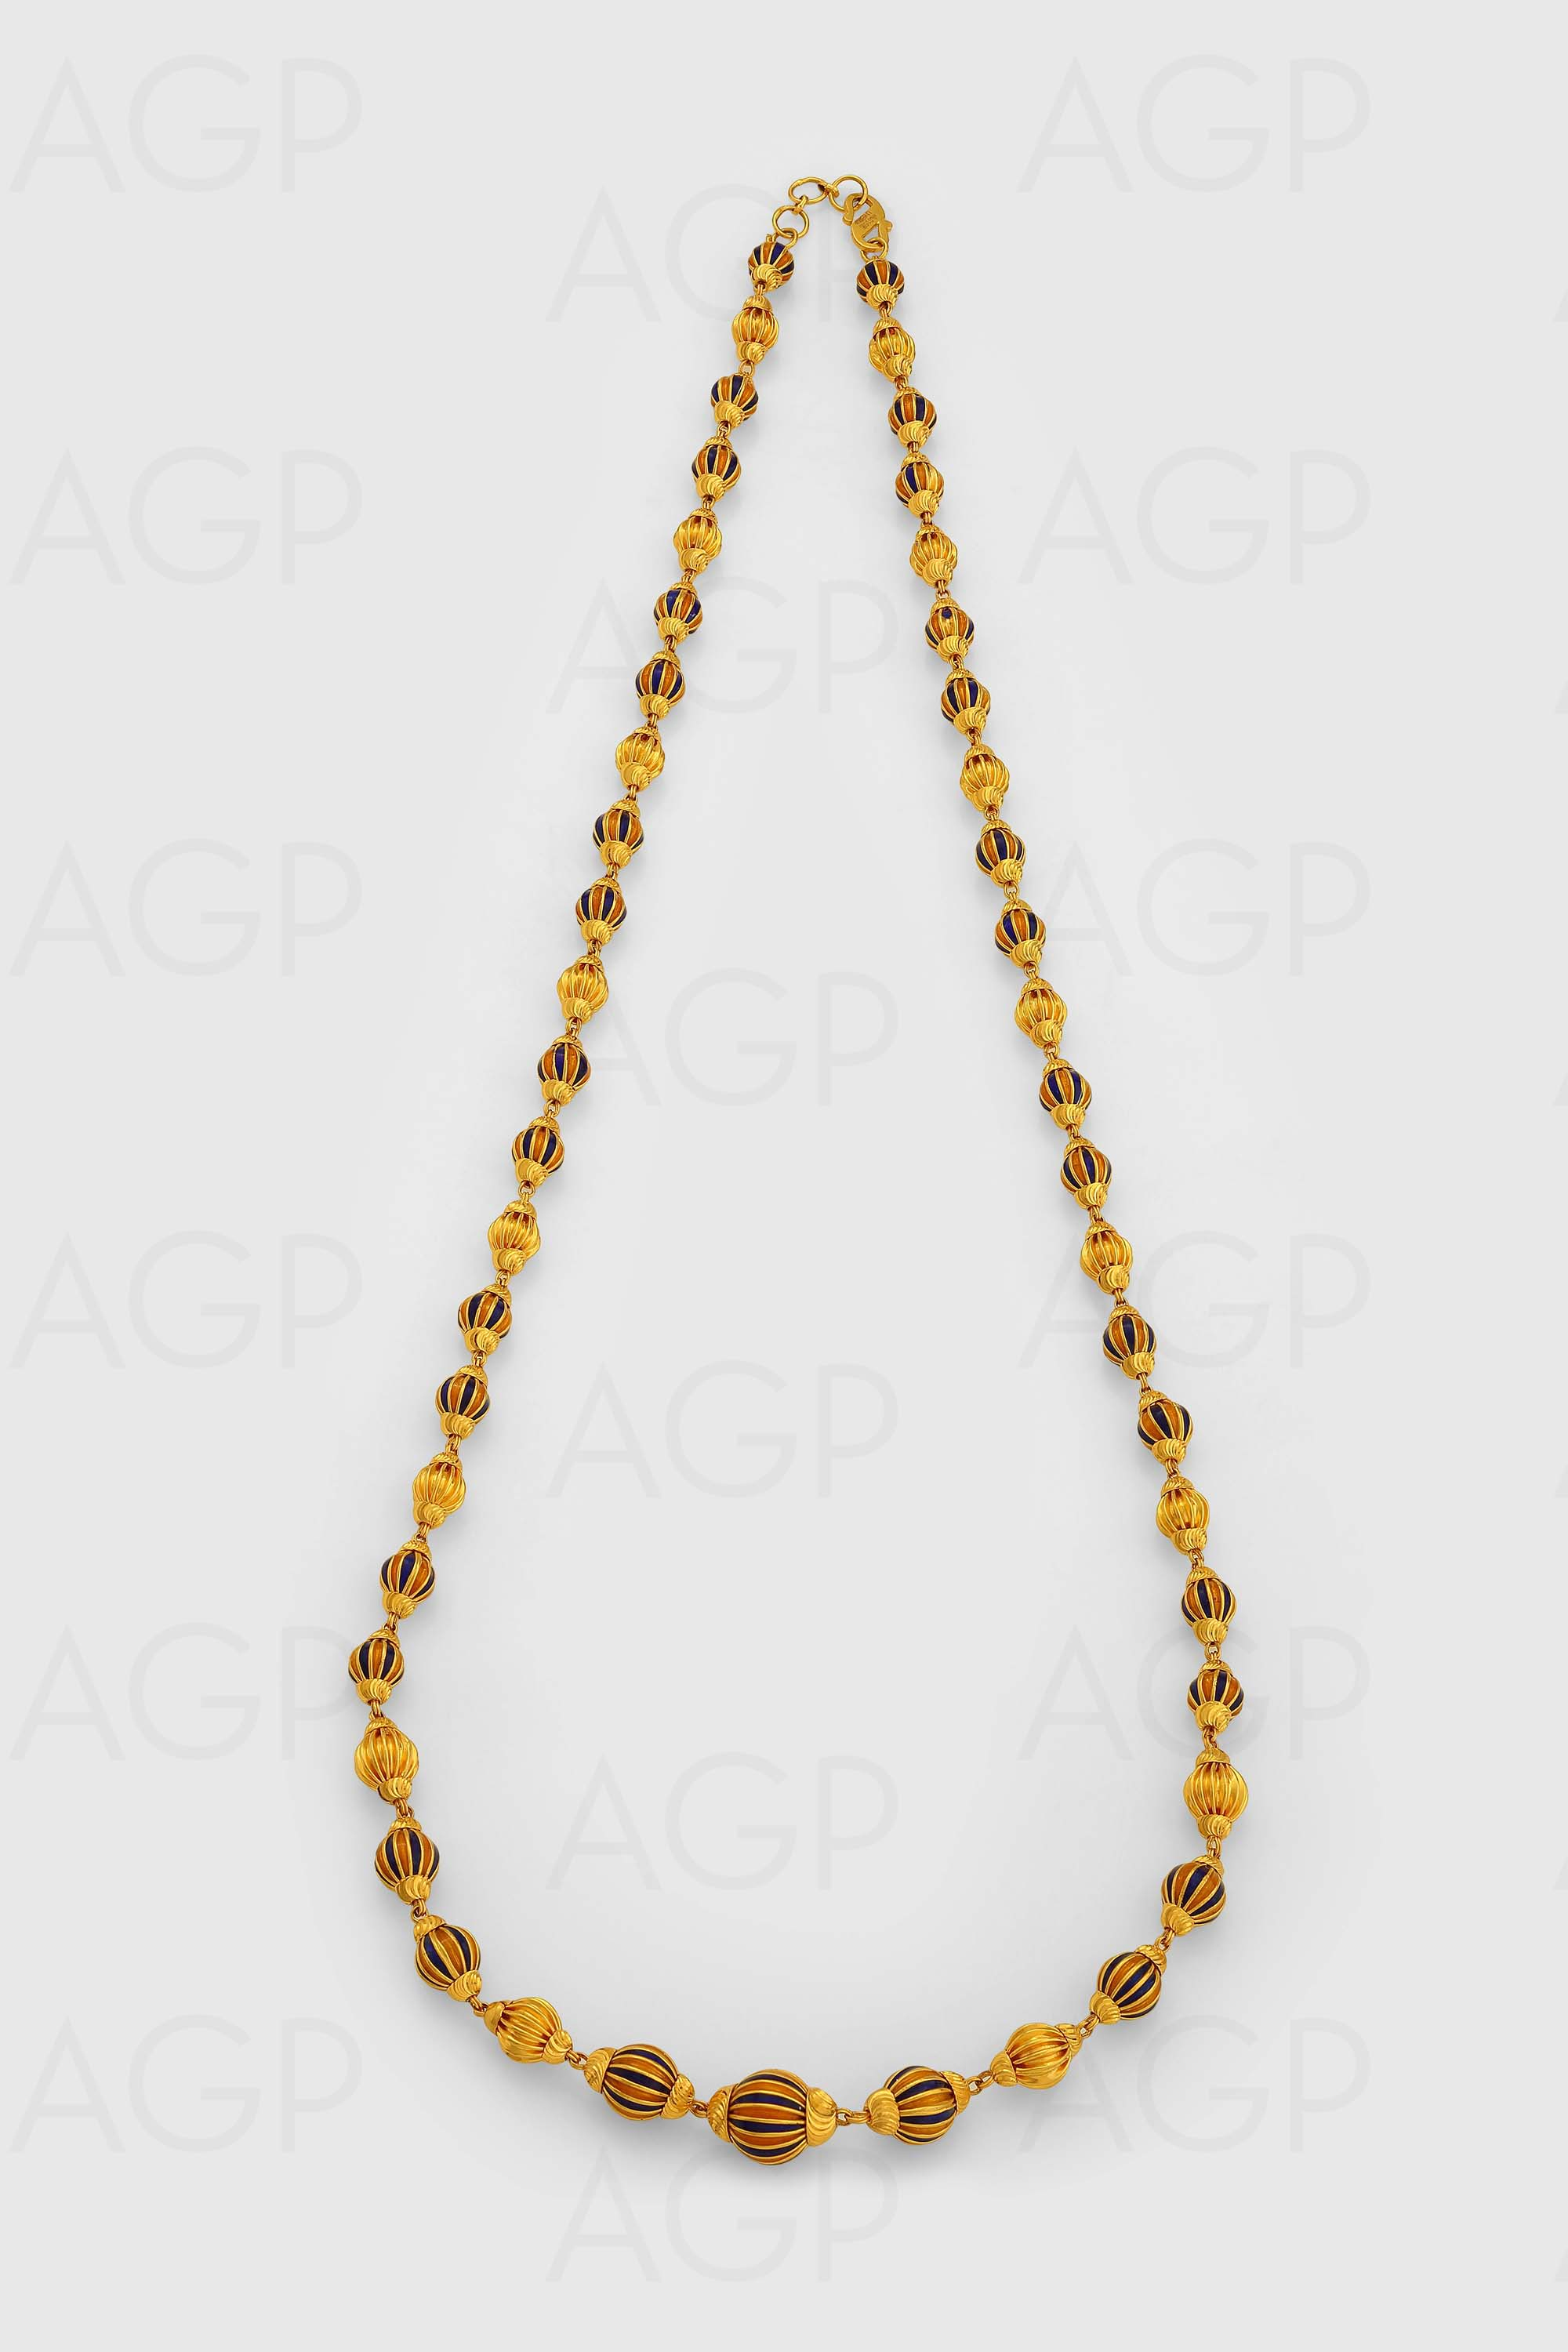 Pai jewellers gold necklace designs latest indian jewellery designs - Chain 46